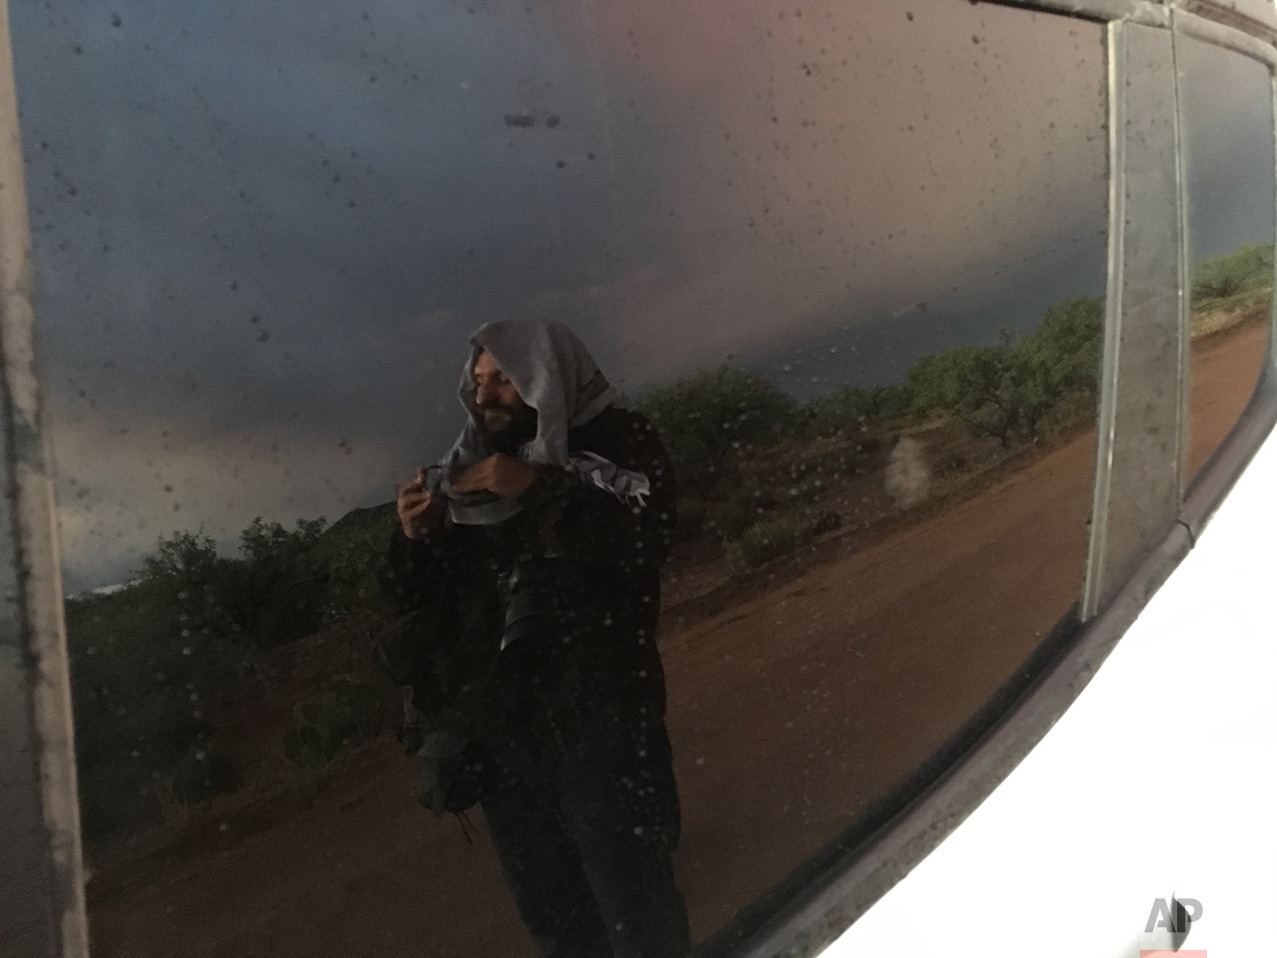 AP photographer Rodrigo Abd is reflected in a car window as he cleans his lens before seeing a double rainbow on the outskirts of Sasabe, in the Mexican state of Sonora, near the border with Arizona, April 1, 2017. (AP Photo/Christopher Sherman)